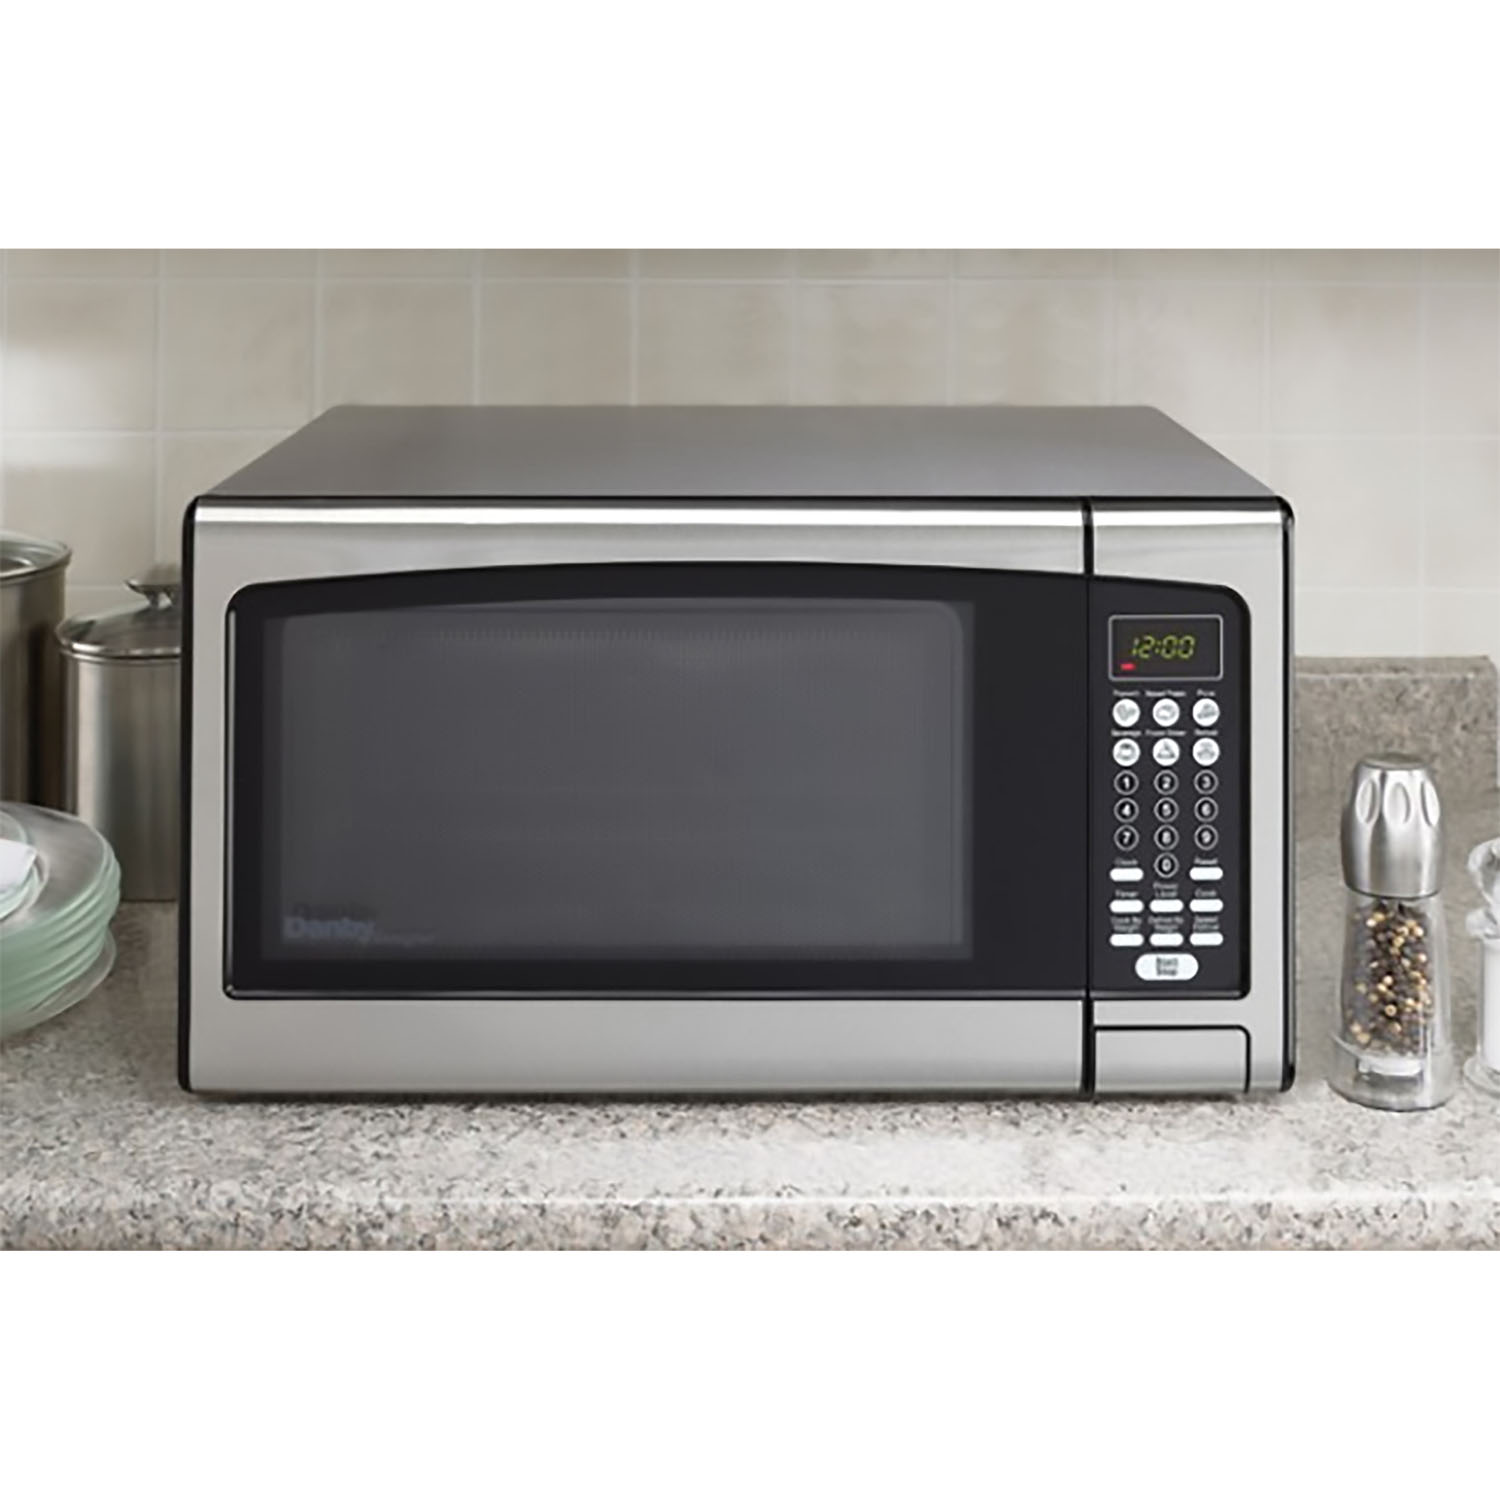 Danby Designer 1 1 Cu Ft Microwave Oven In Stainless